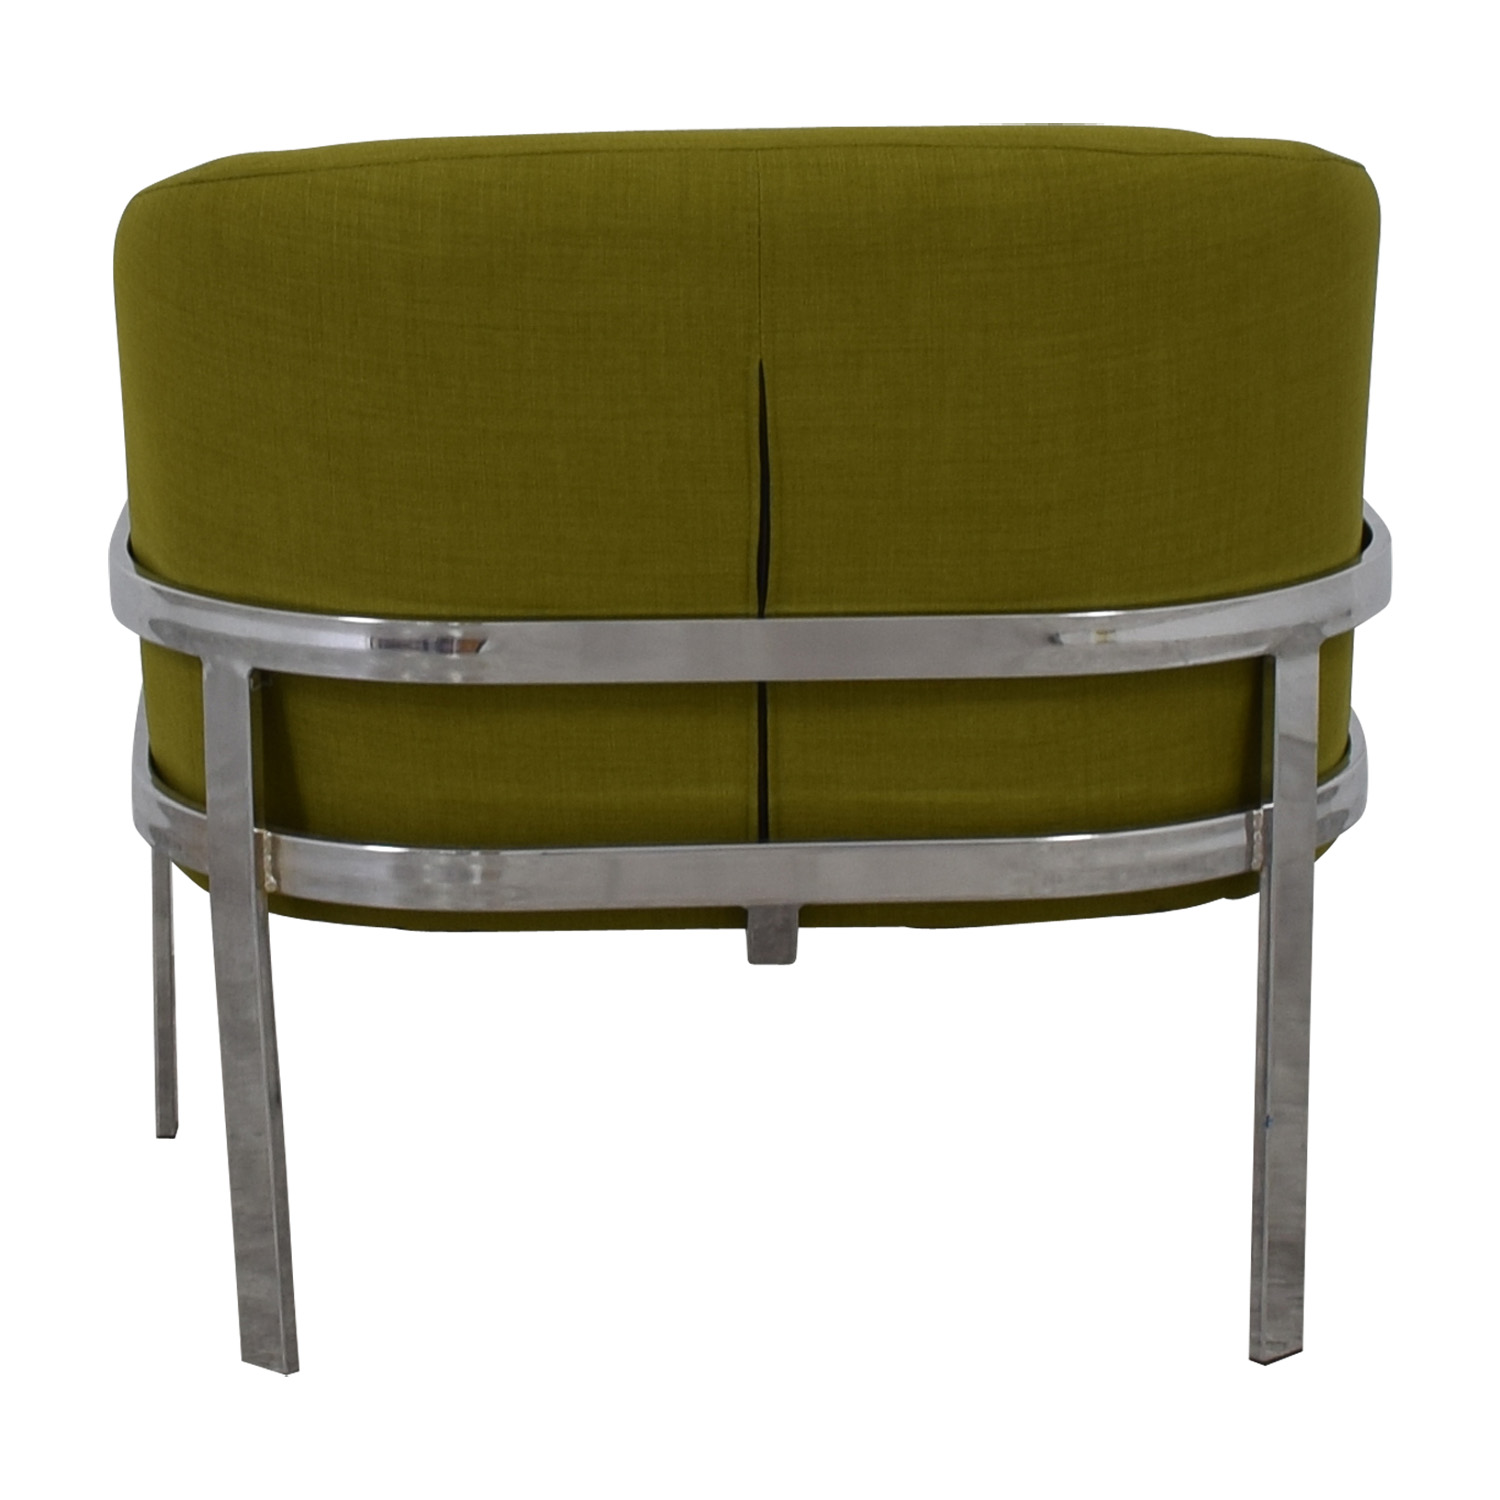 Coaster Coaster Green Accent Chair used